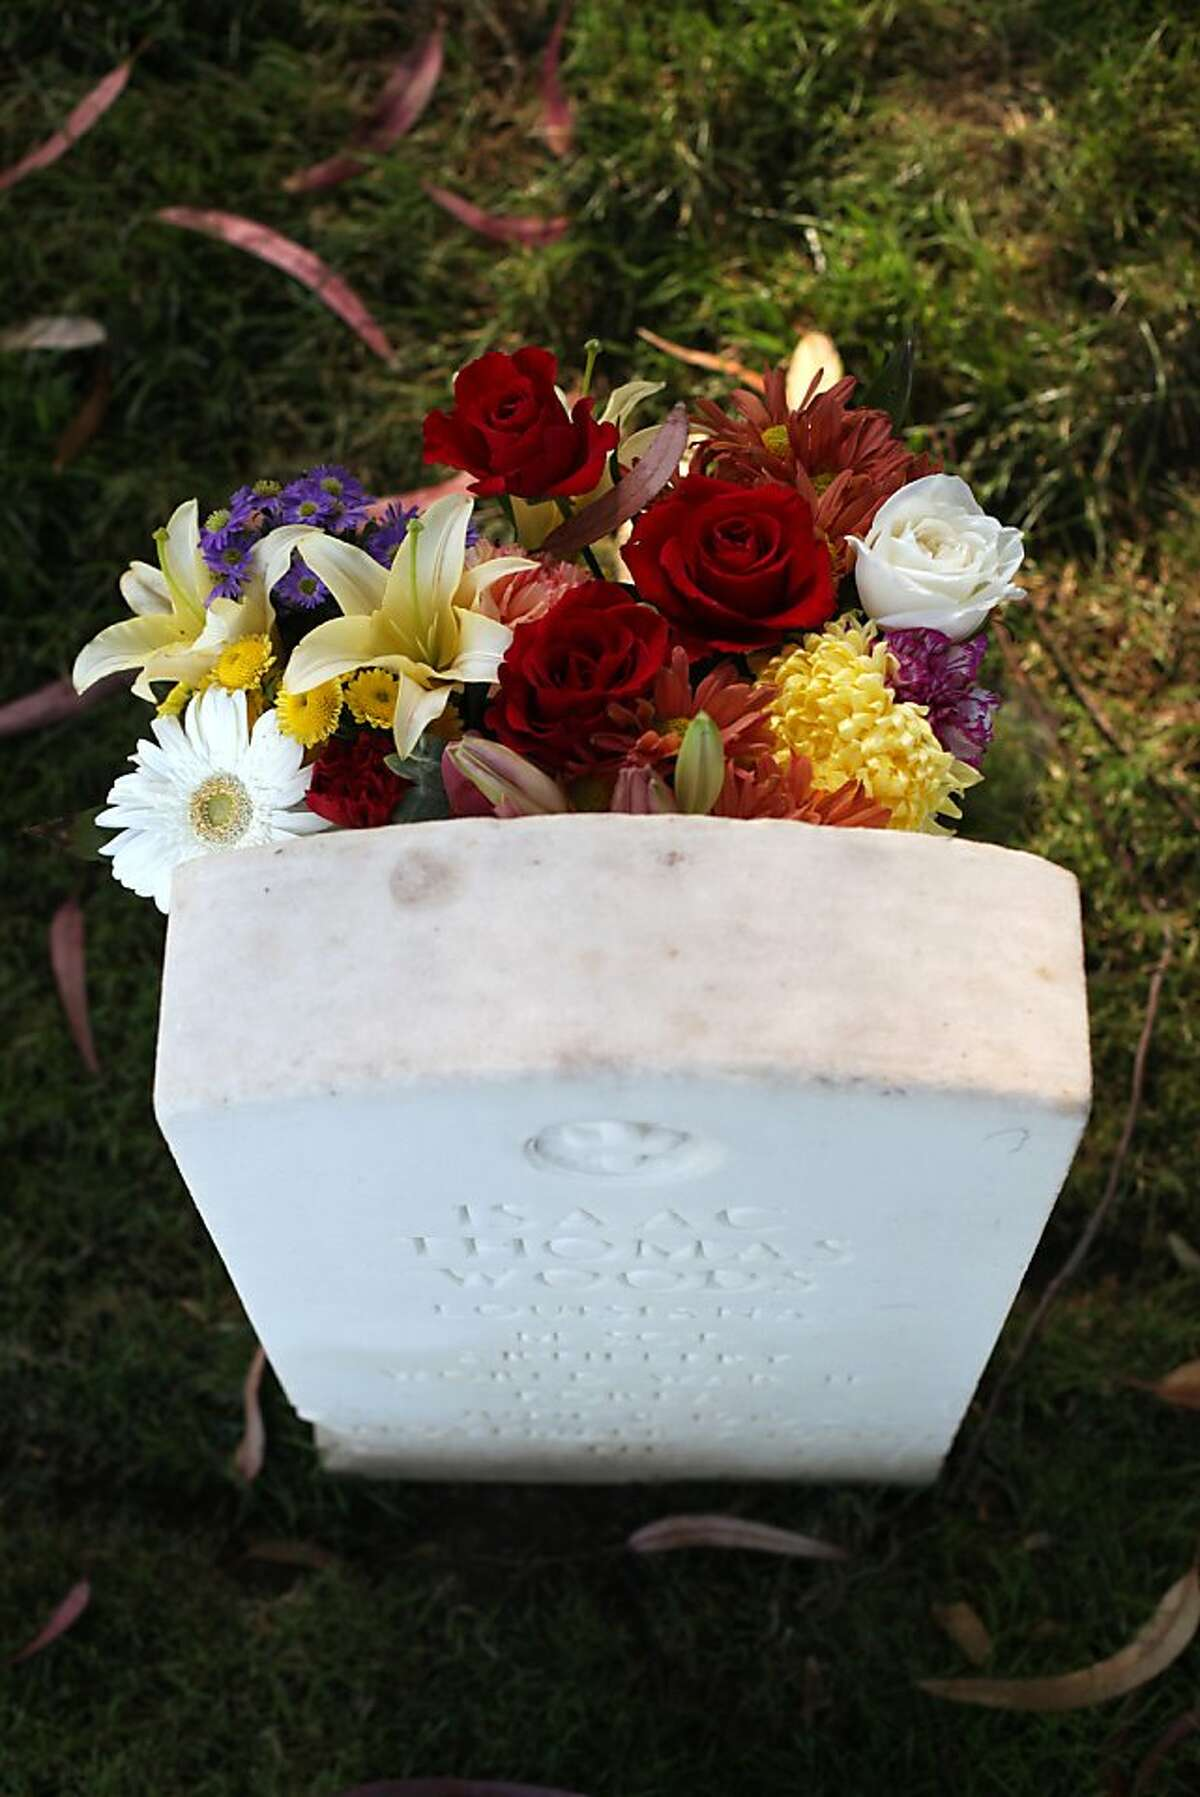 Flowers are seen on the grave of Isaac Thomas Woods in San Francisco National Cemetery on October 2, 2013 in San Francisco, Calif.